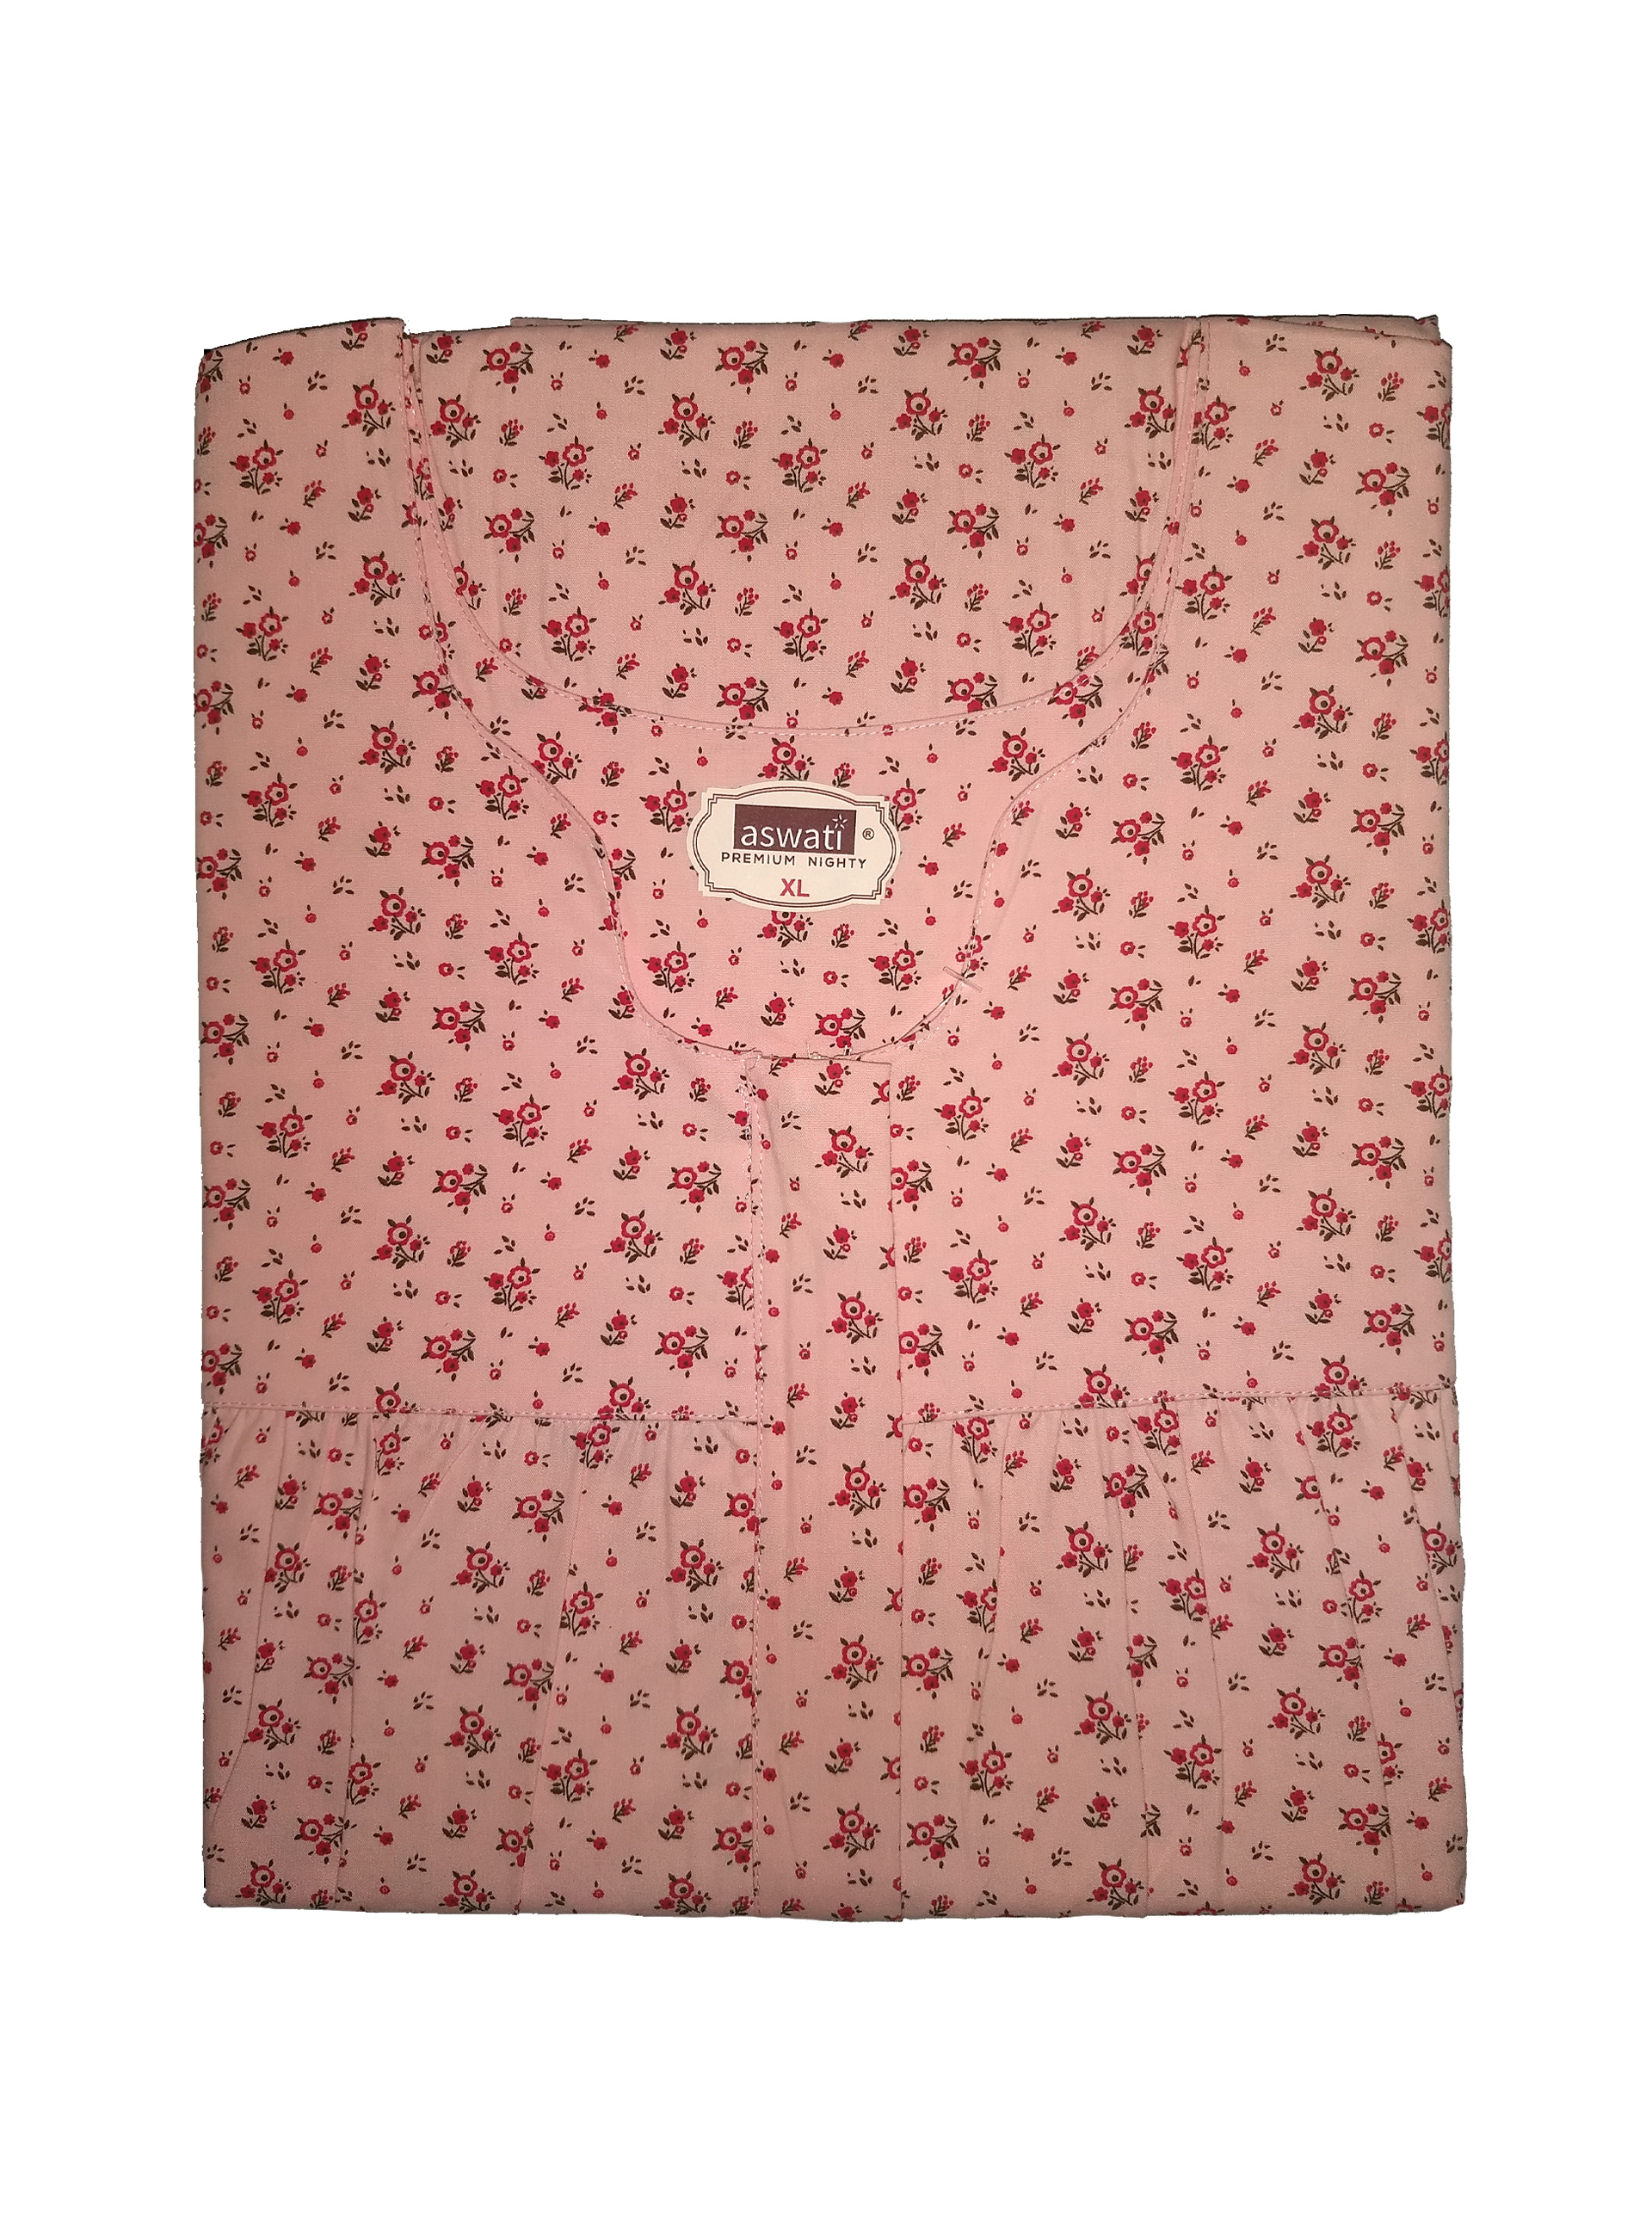 Premium Nighty (XL) - Pink With Floral Prints